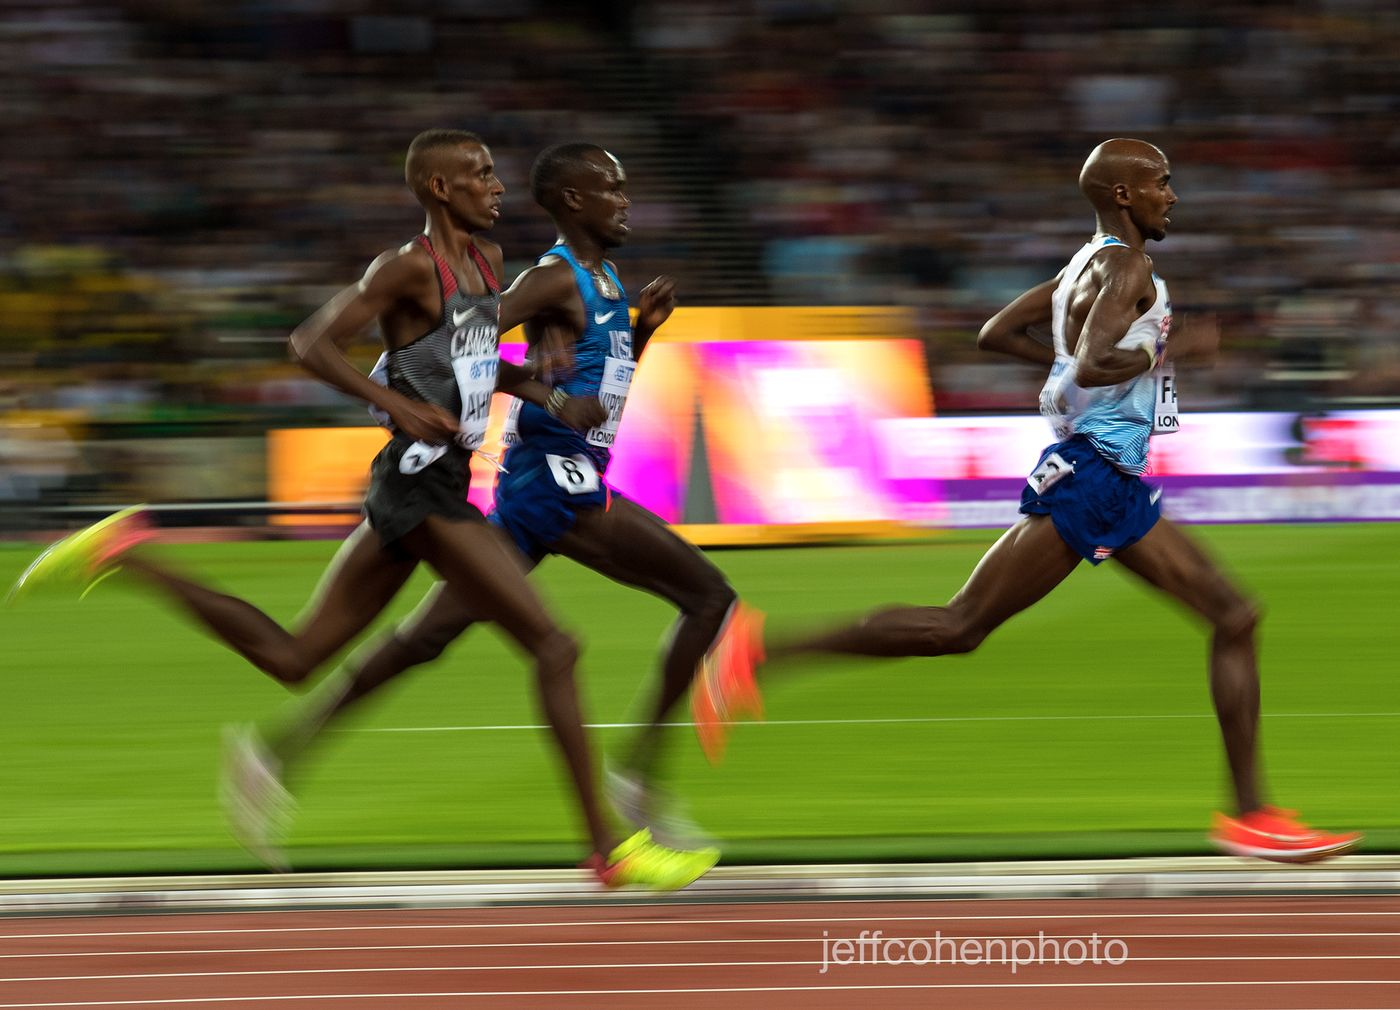 2017-IAAF-WC-London-day-1-farah-10k-jeff-cohen-photo--4128-web.jpg